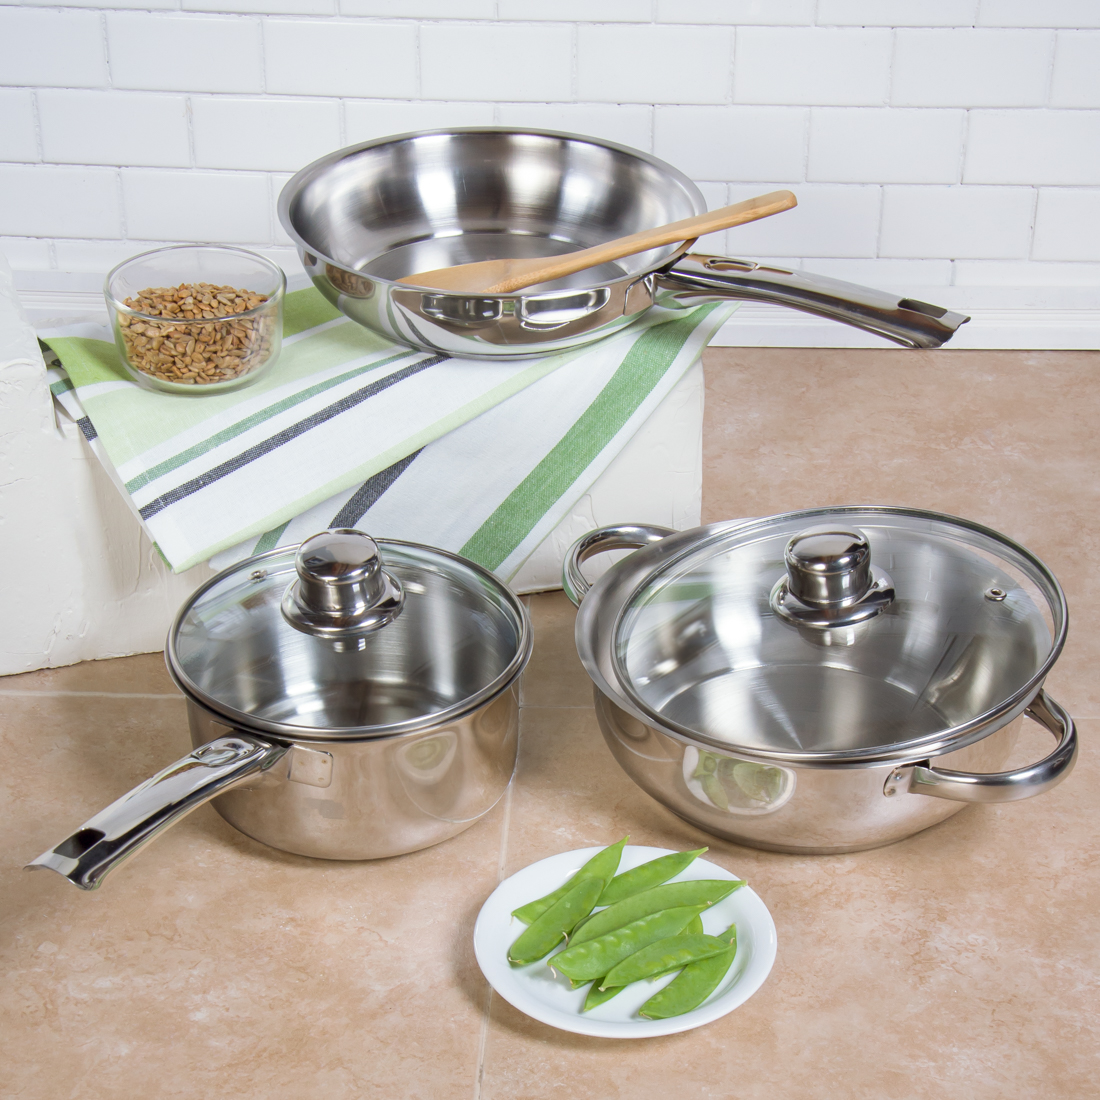 5 Piece Stainless Steel Cookware Set by